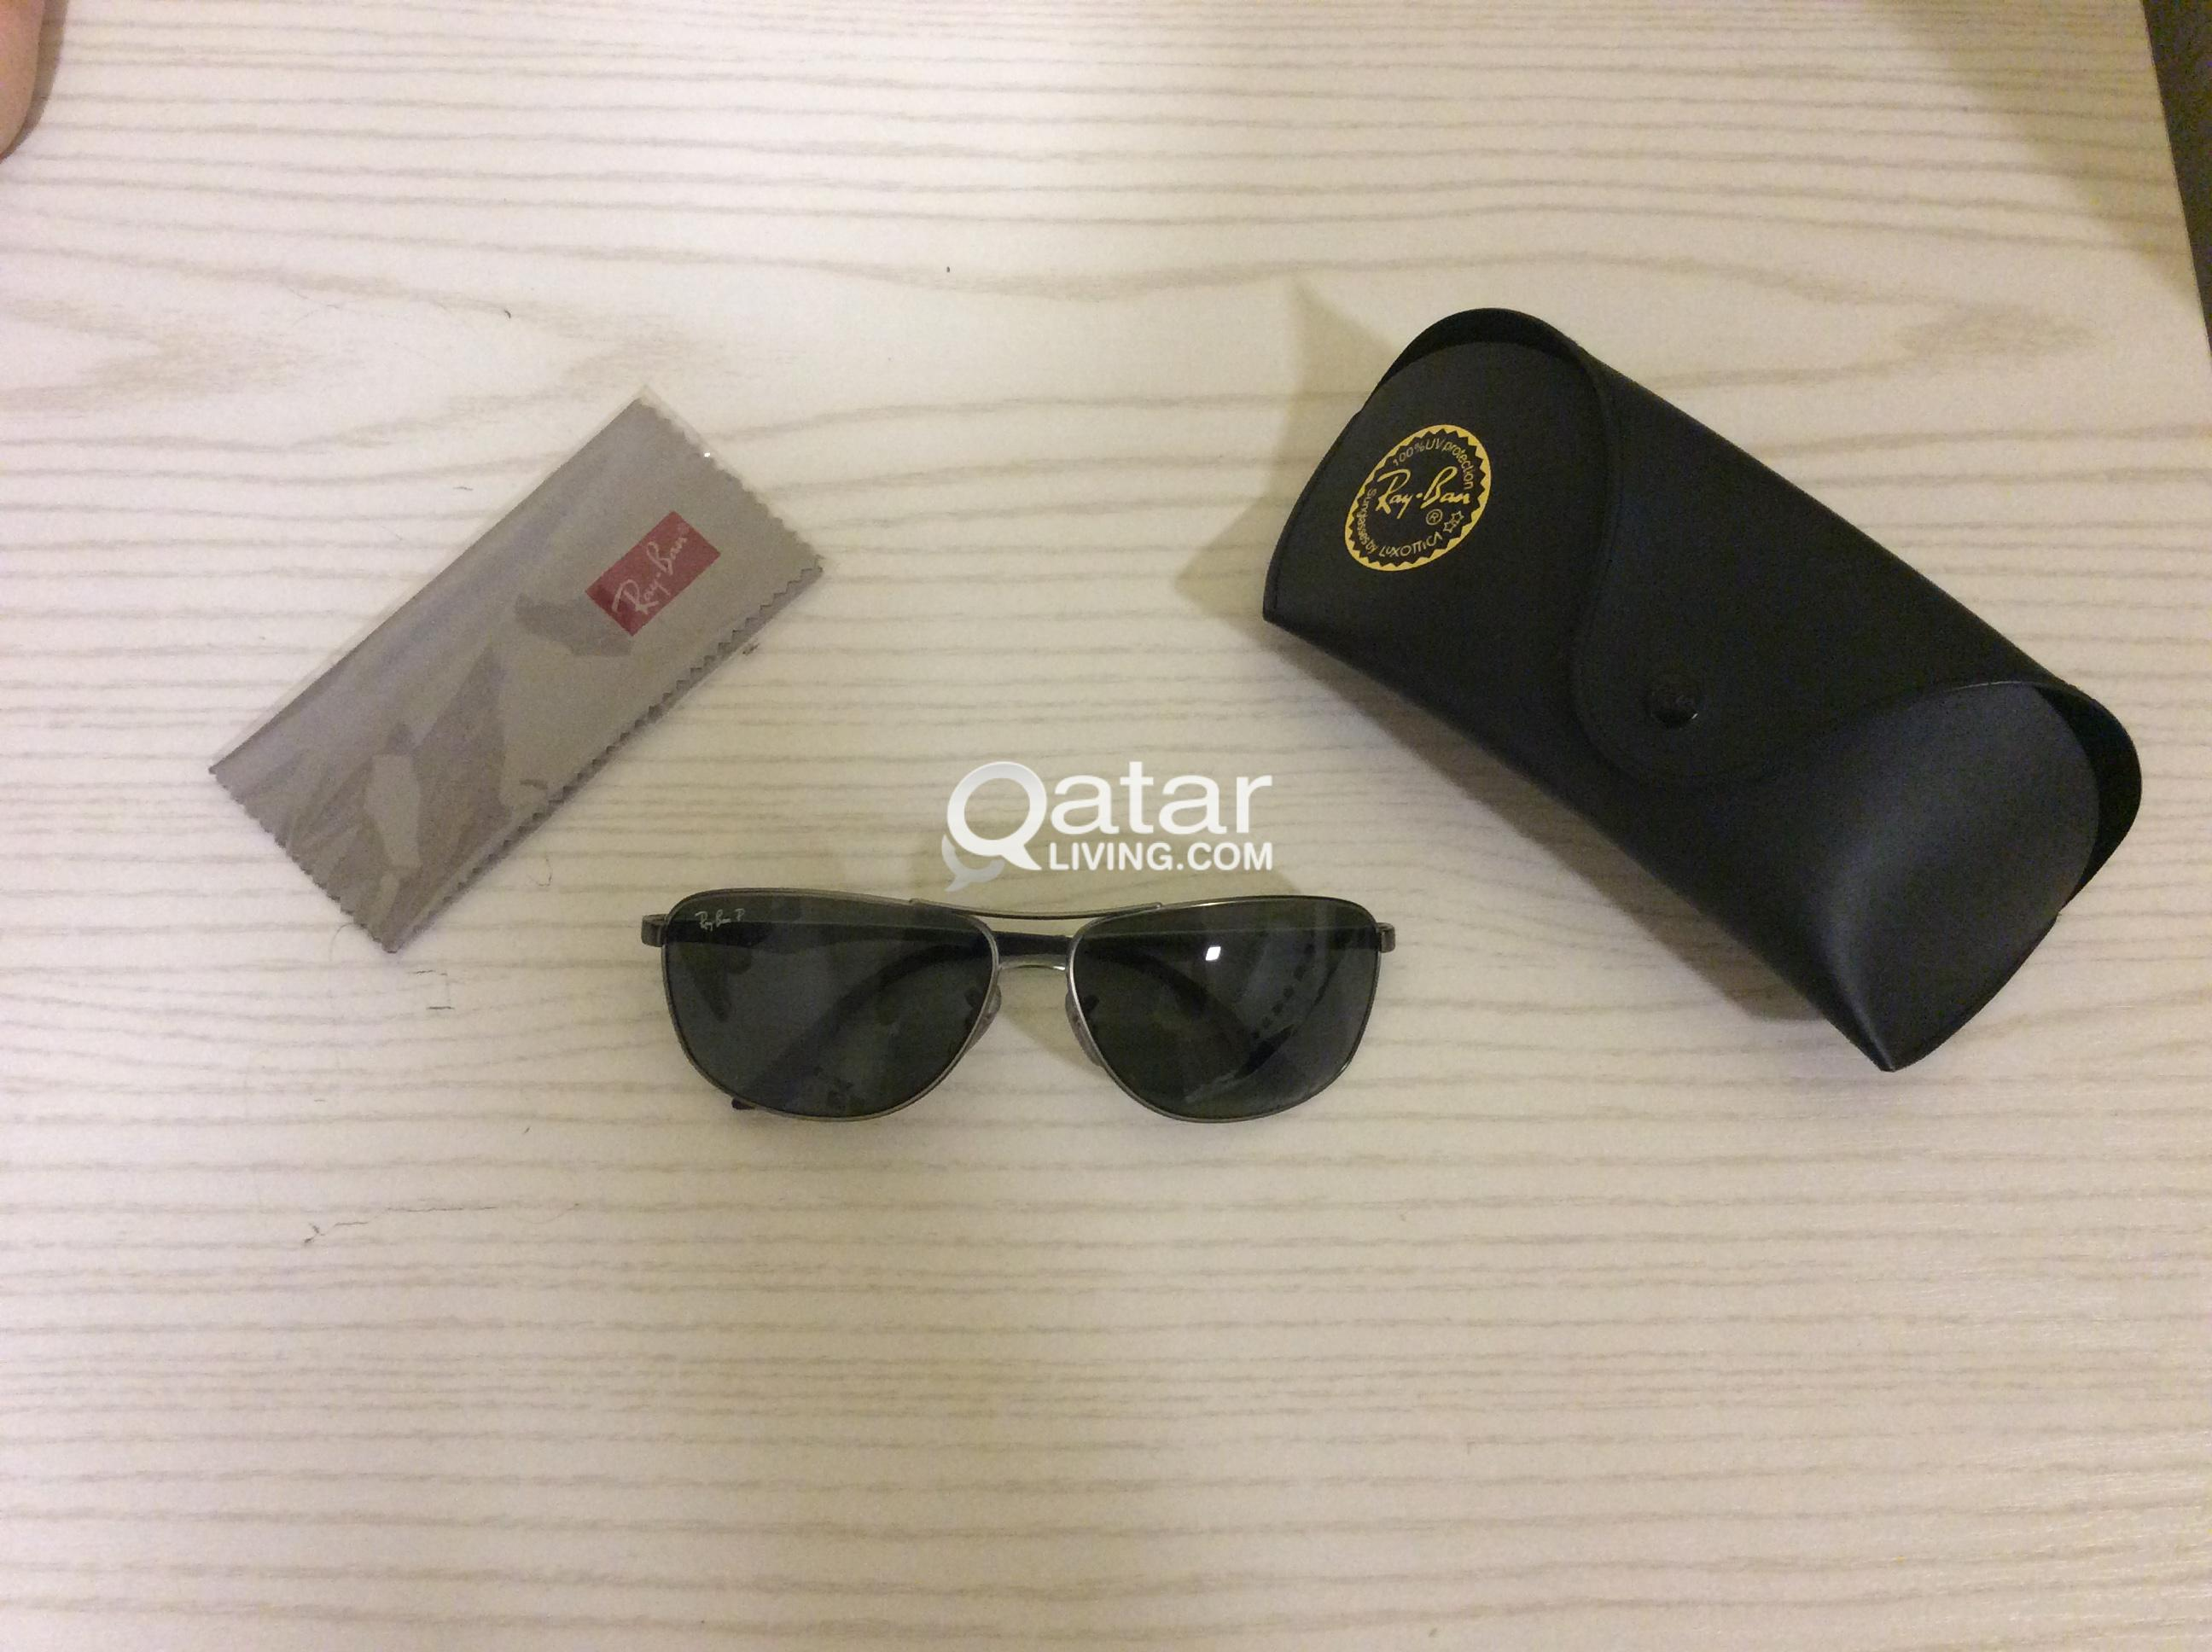 279e138773 ... scuderia ferrari rb3602m blue and gunmetal sunglasses 5ec58 6148a  sale  title title title title title title. information. original ray ban  sunglasses ...